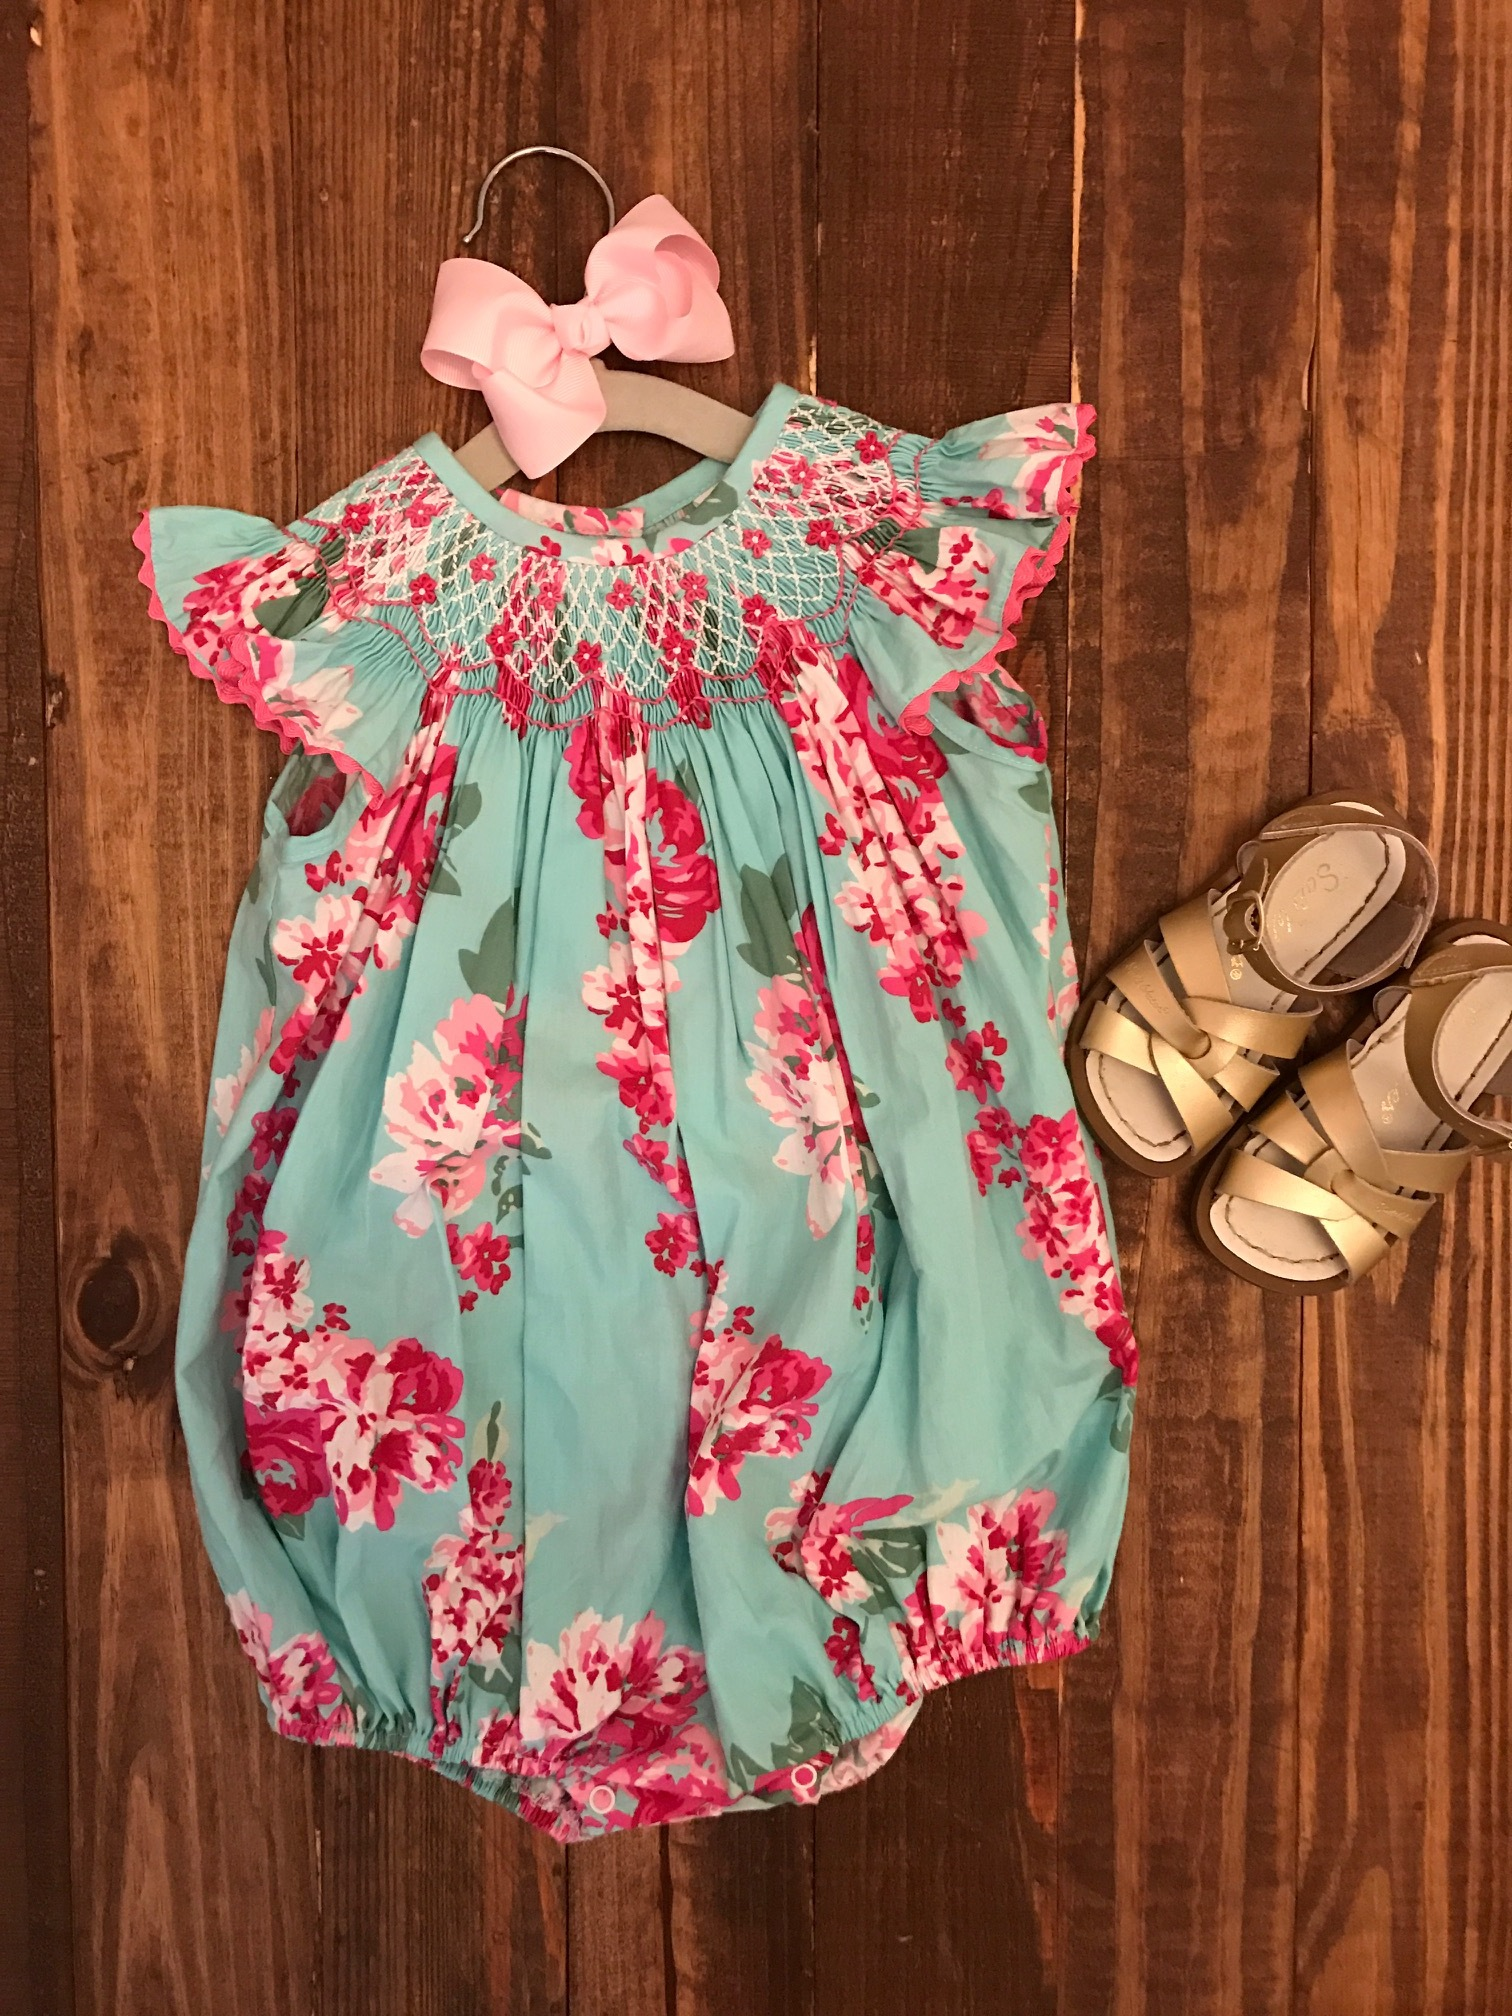 Smocked Auctions bubble, Salt Water Sandals